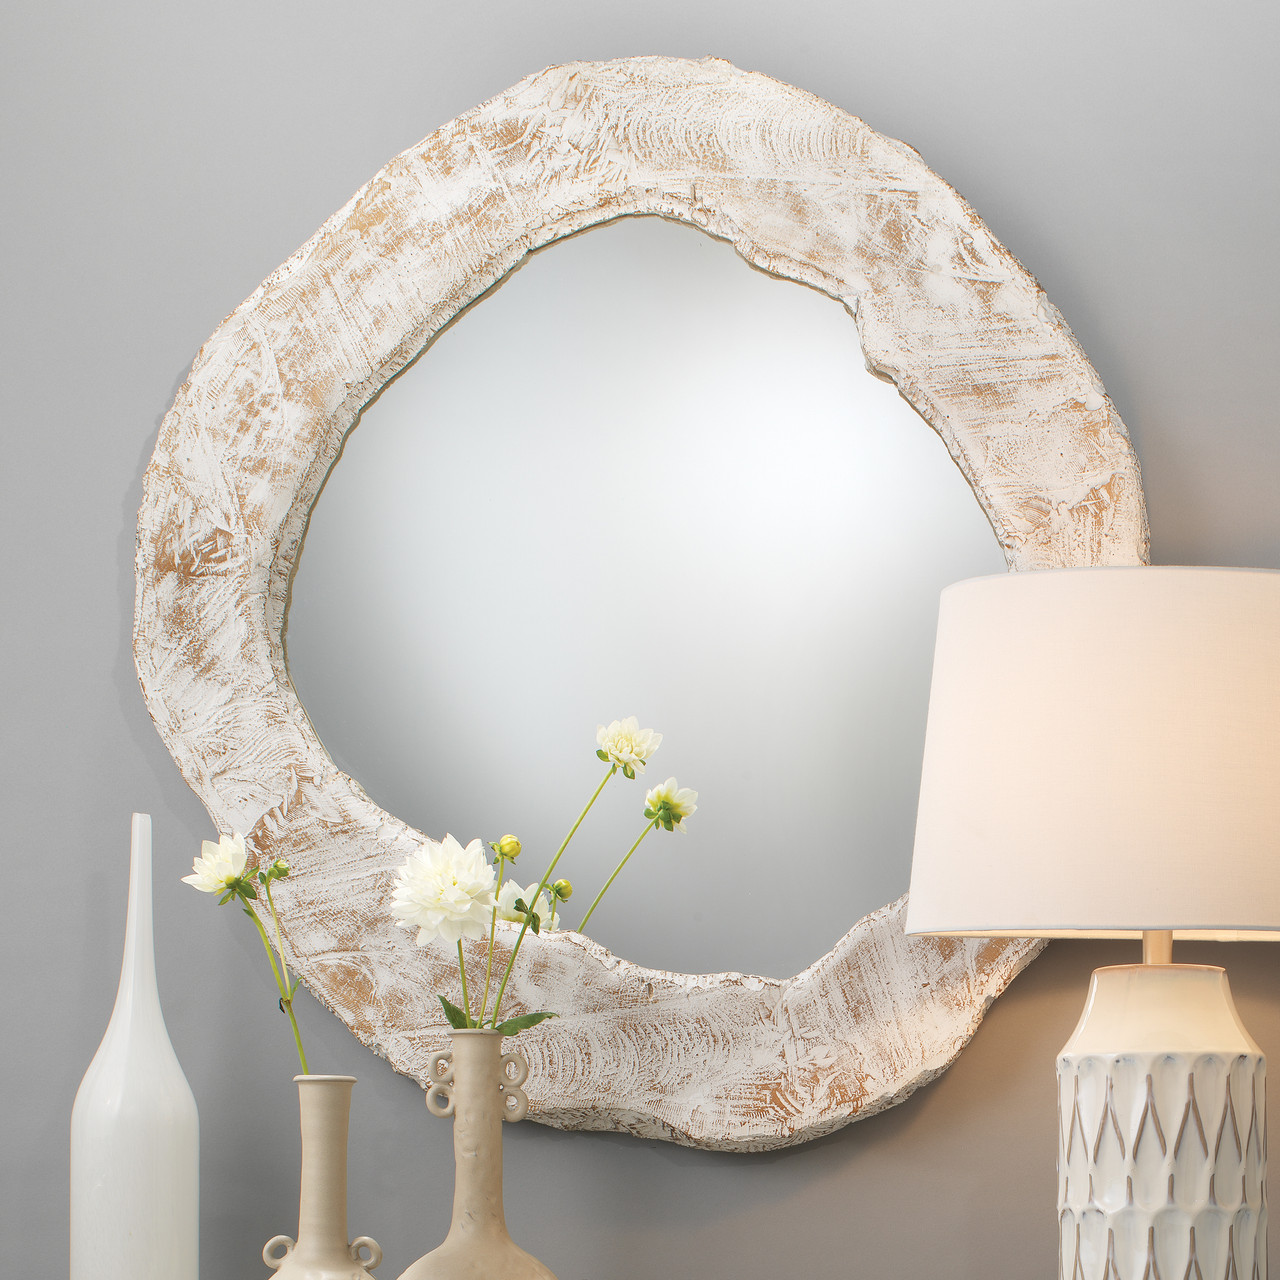 Image of Colvos Passage Driftwood Mirror